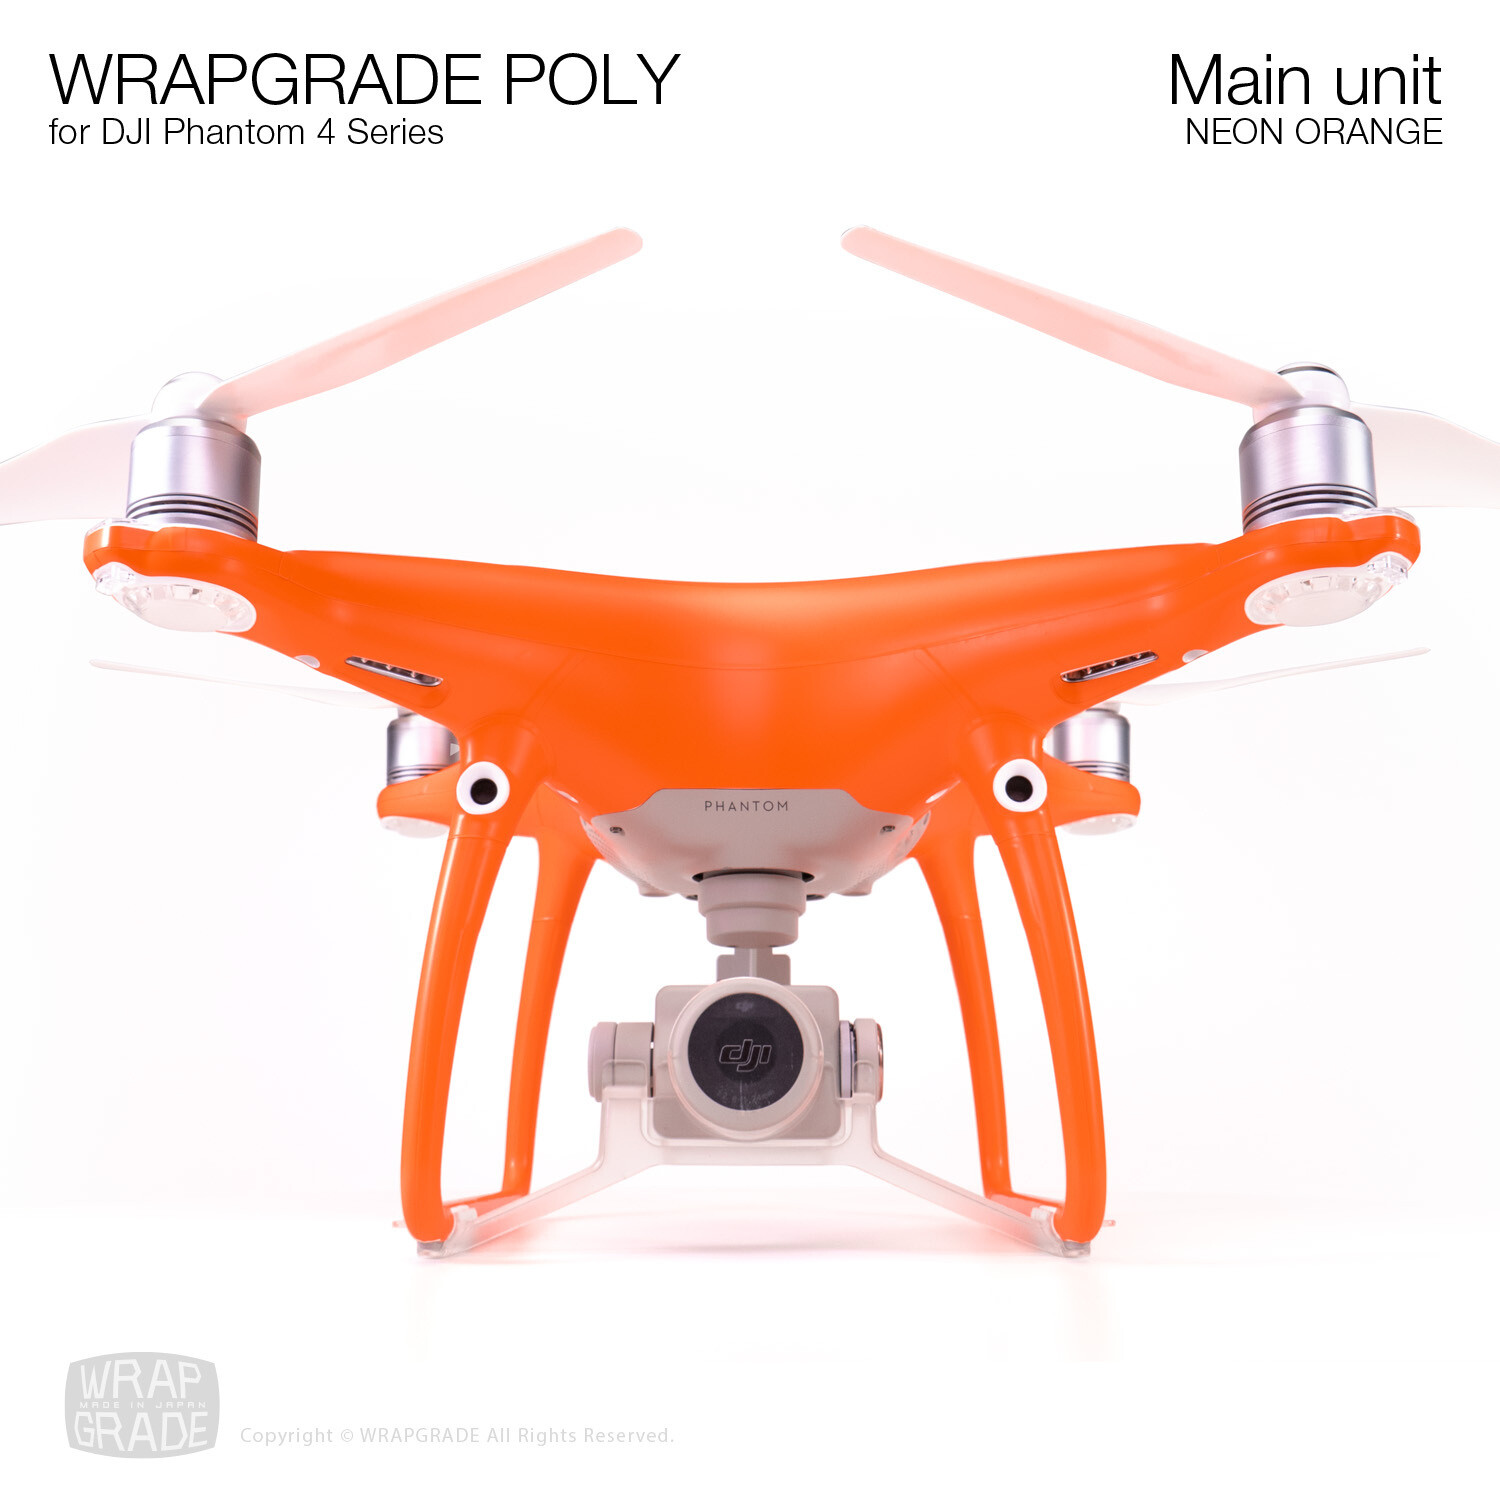 Wrapgrade Poly Skin for DJI Phantom 4 | Main unit (NEON ORANGE)